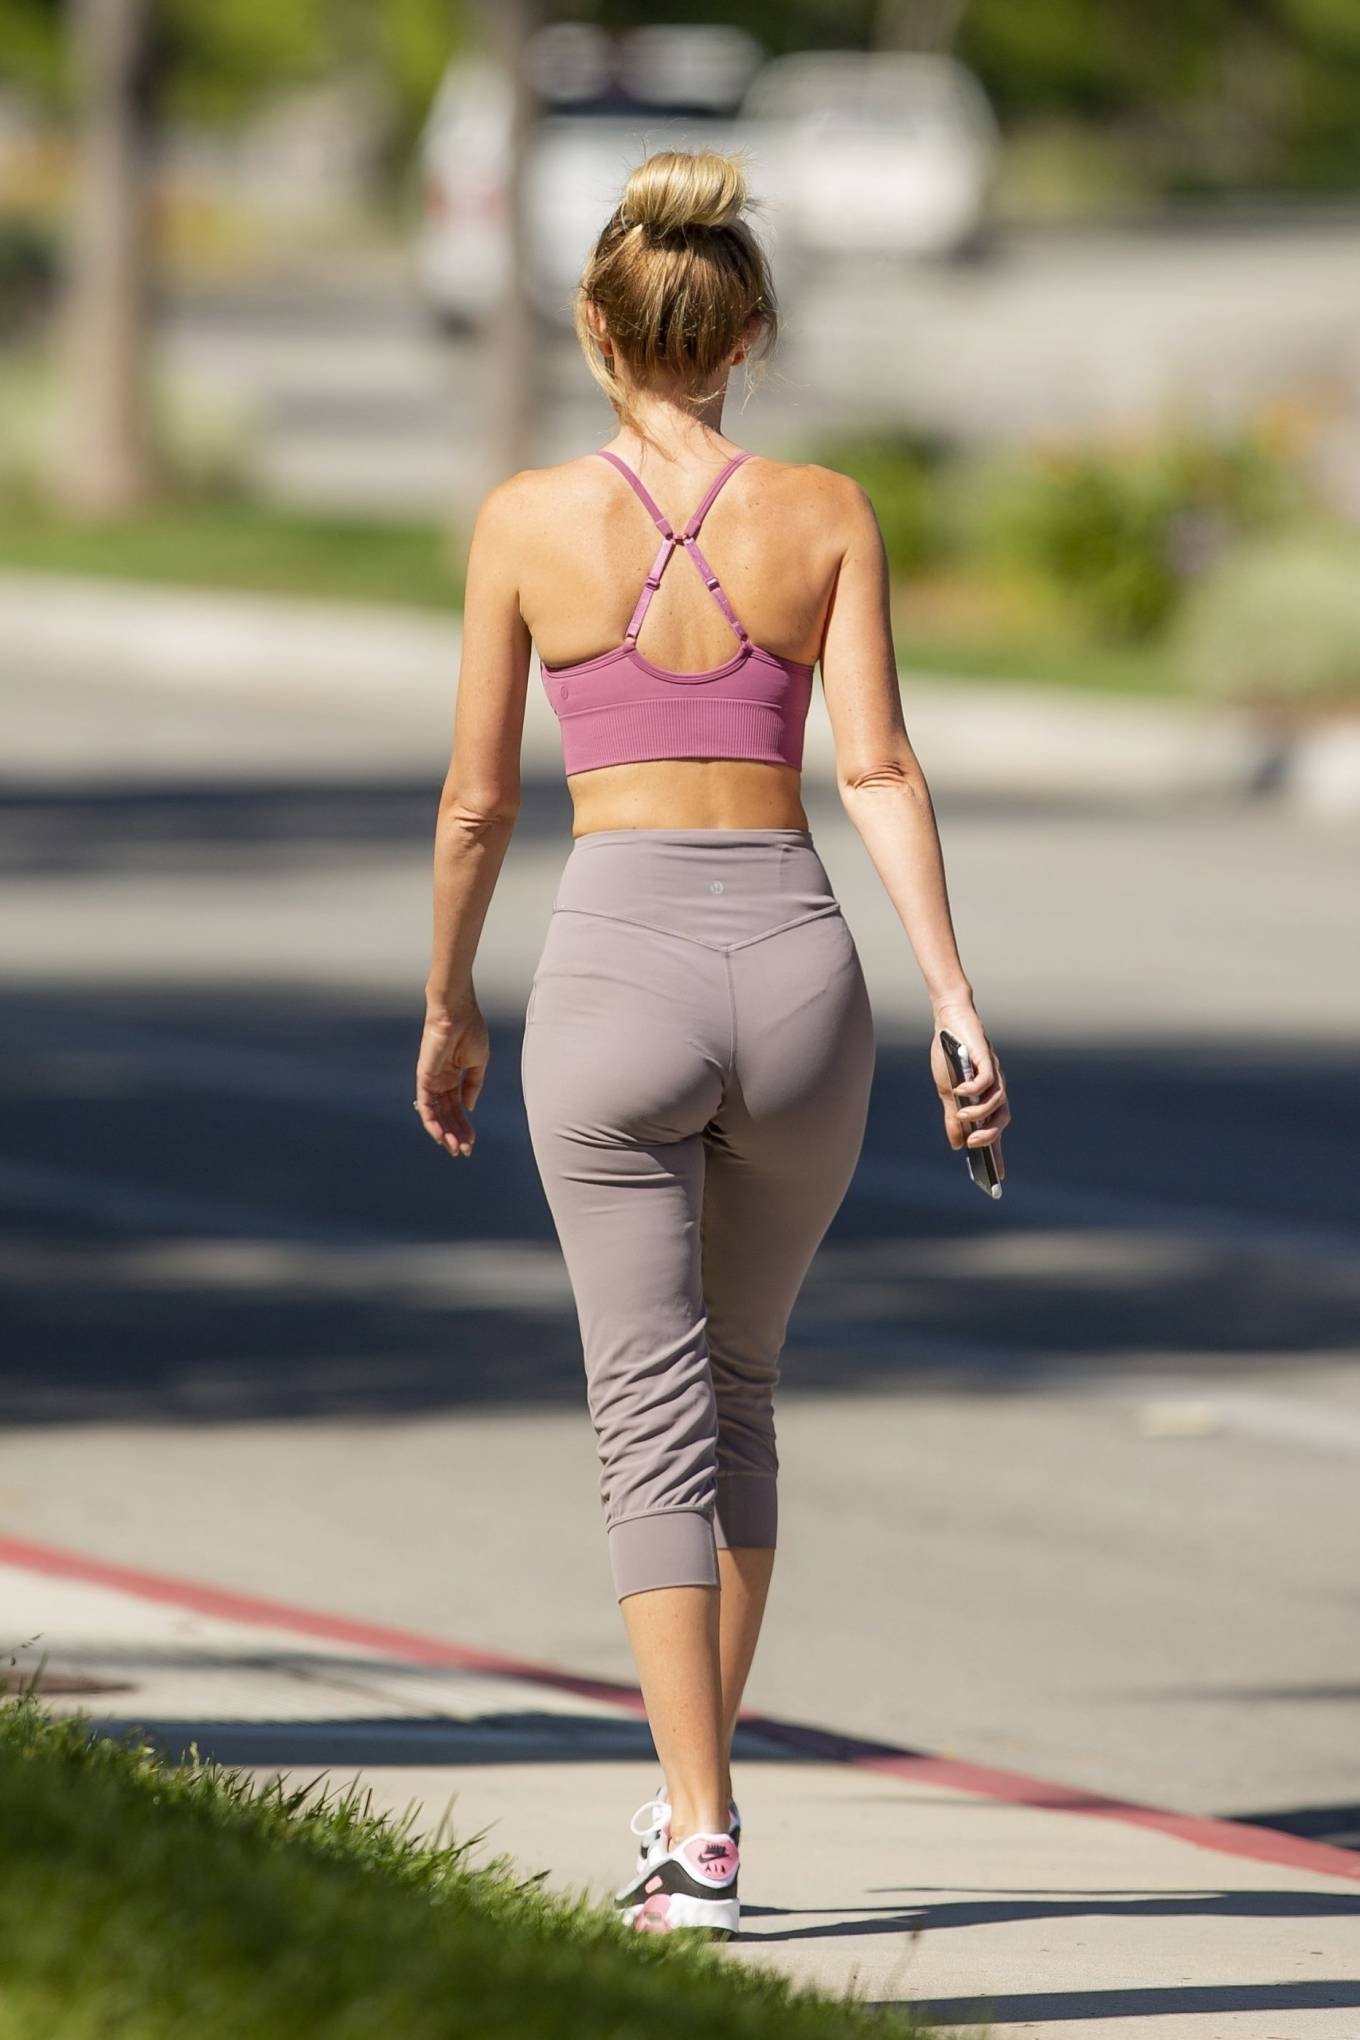 Hayley Roberts Hasselhoff 2020 : Hayley Roberts Hasselhoff in Tights and Sports Bra – Out in Calabasas-02